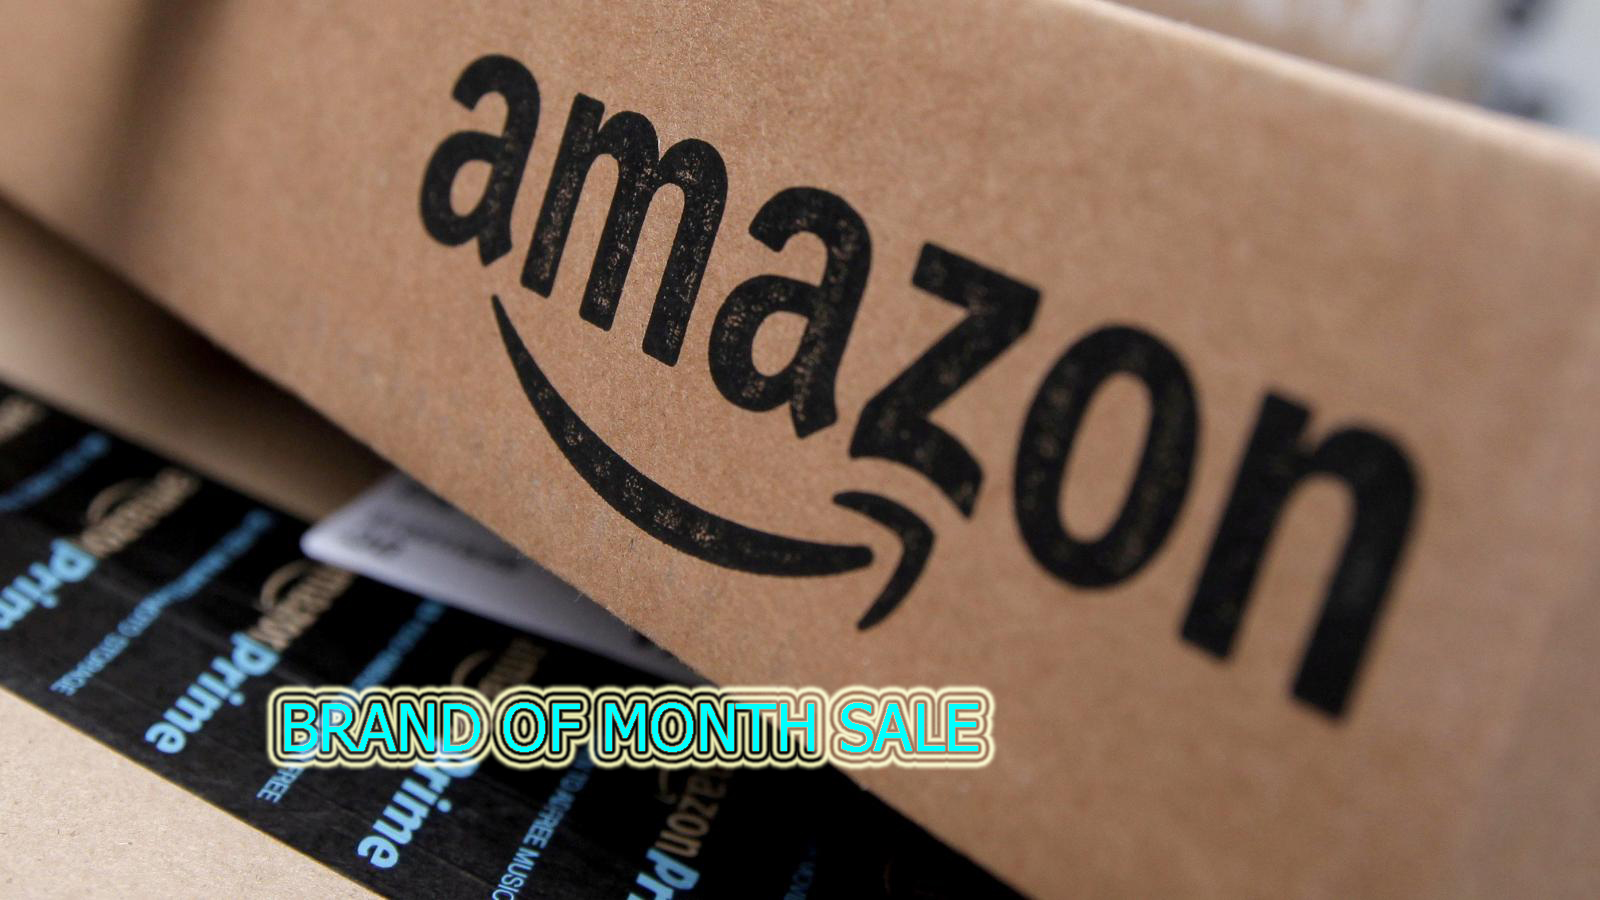 Amazon Brand of Month Sale is running on